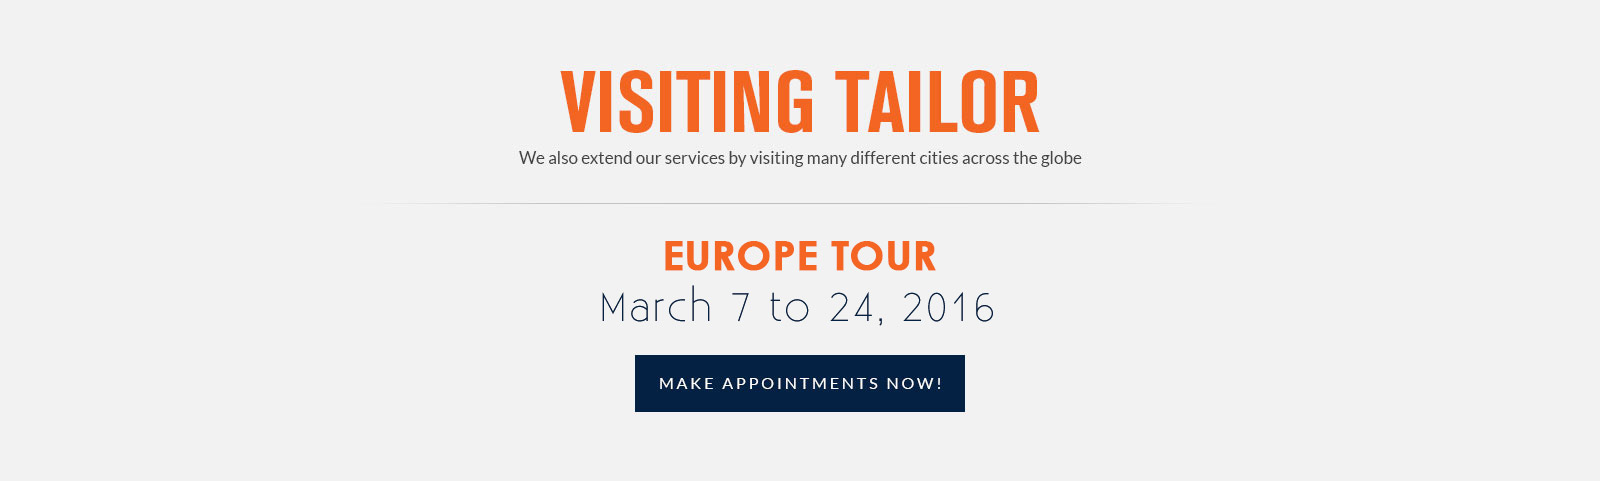 tailor in Europe